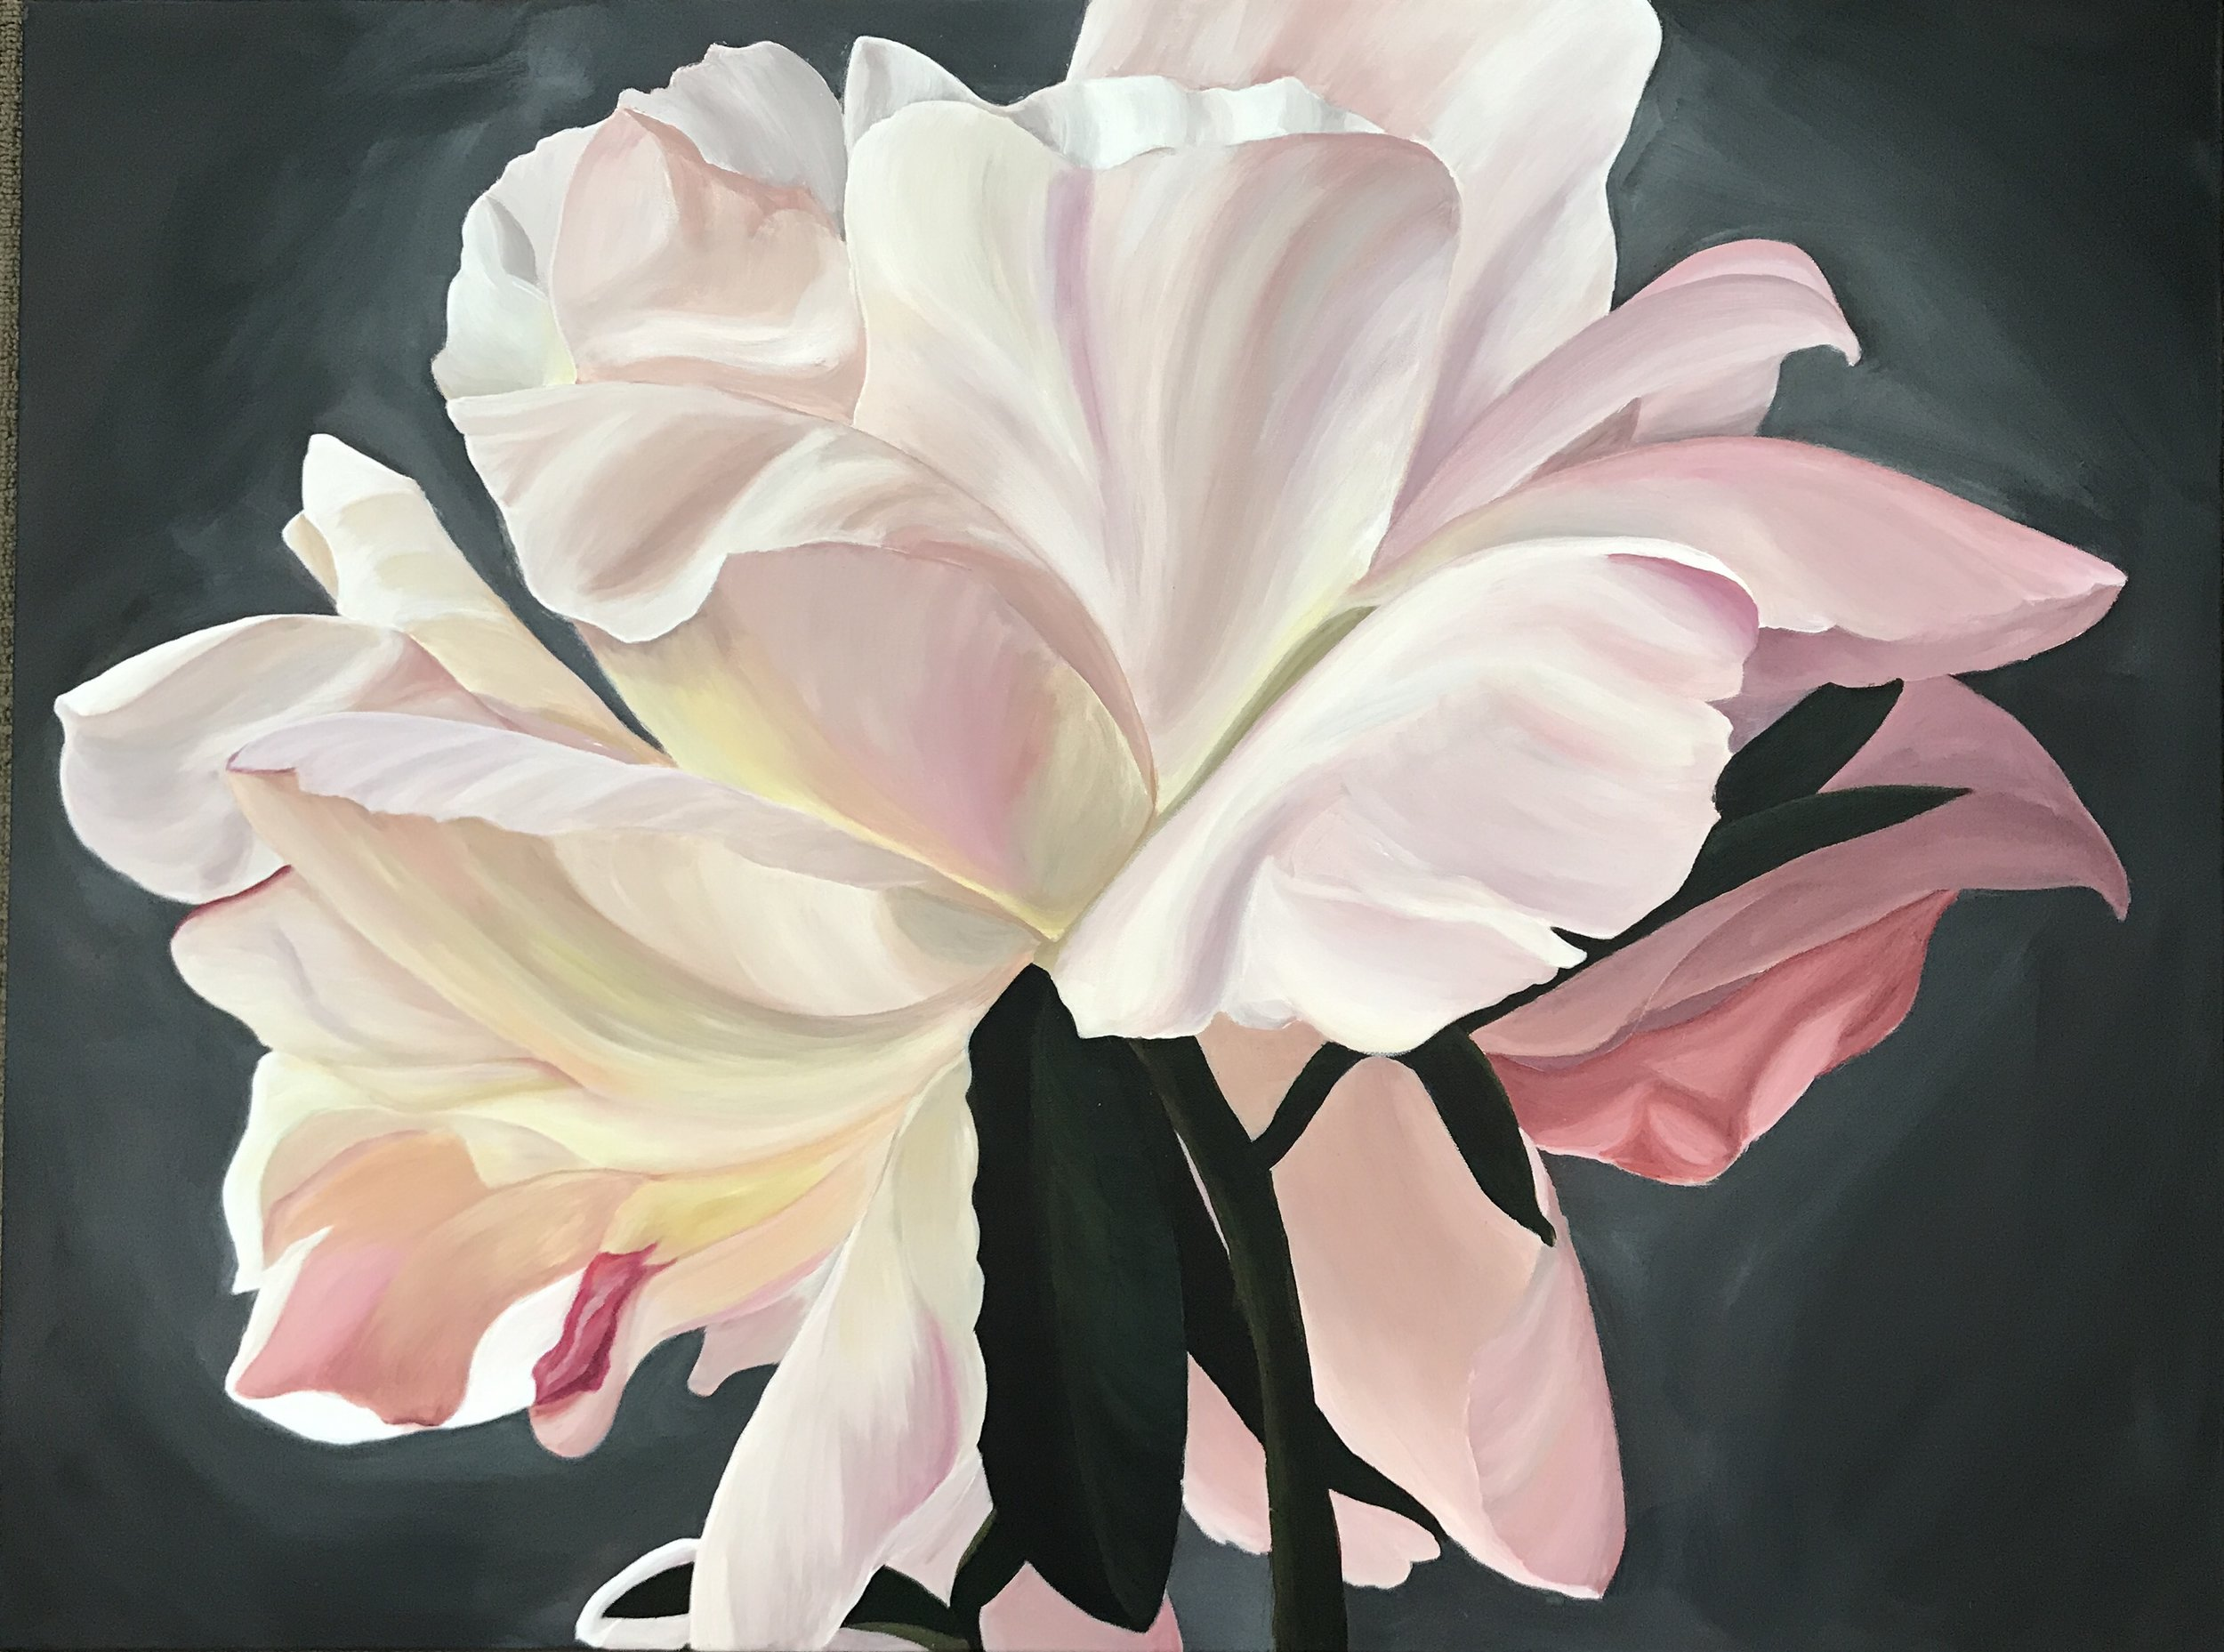 Angel's wings 76cm (W) x 101cm (H) $1,100  Another beautiful peony from France. The light kissing the petals gives them a dreamy feel, almost like Angels dancing in the light.